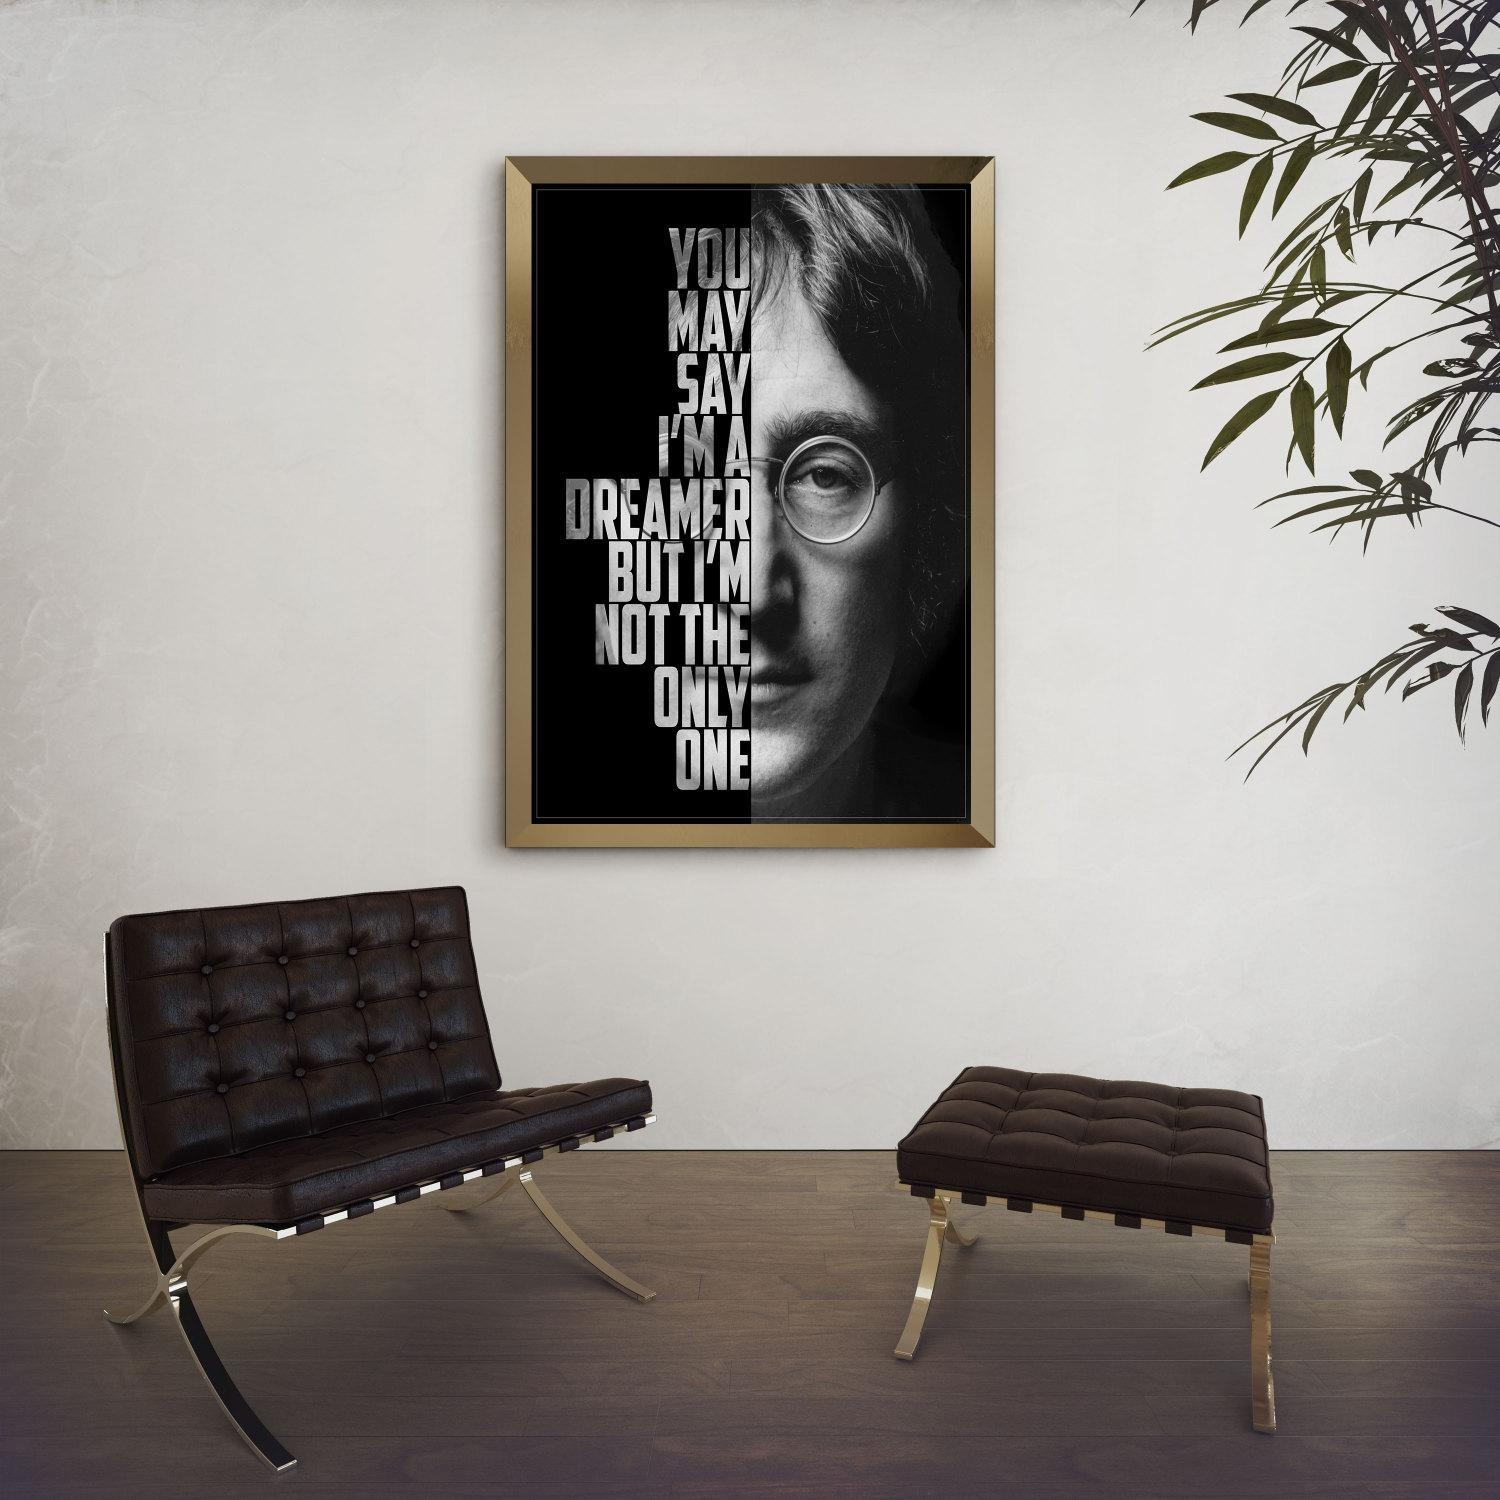 John Lennon Imagine John Lennon Poster Song Lyric Art in Music Lyrics Wall Art